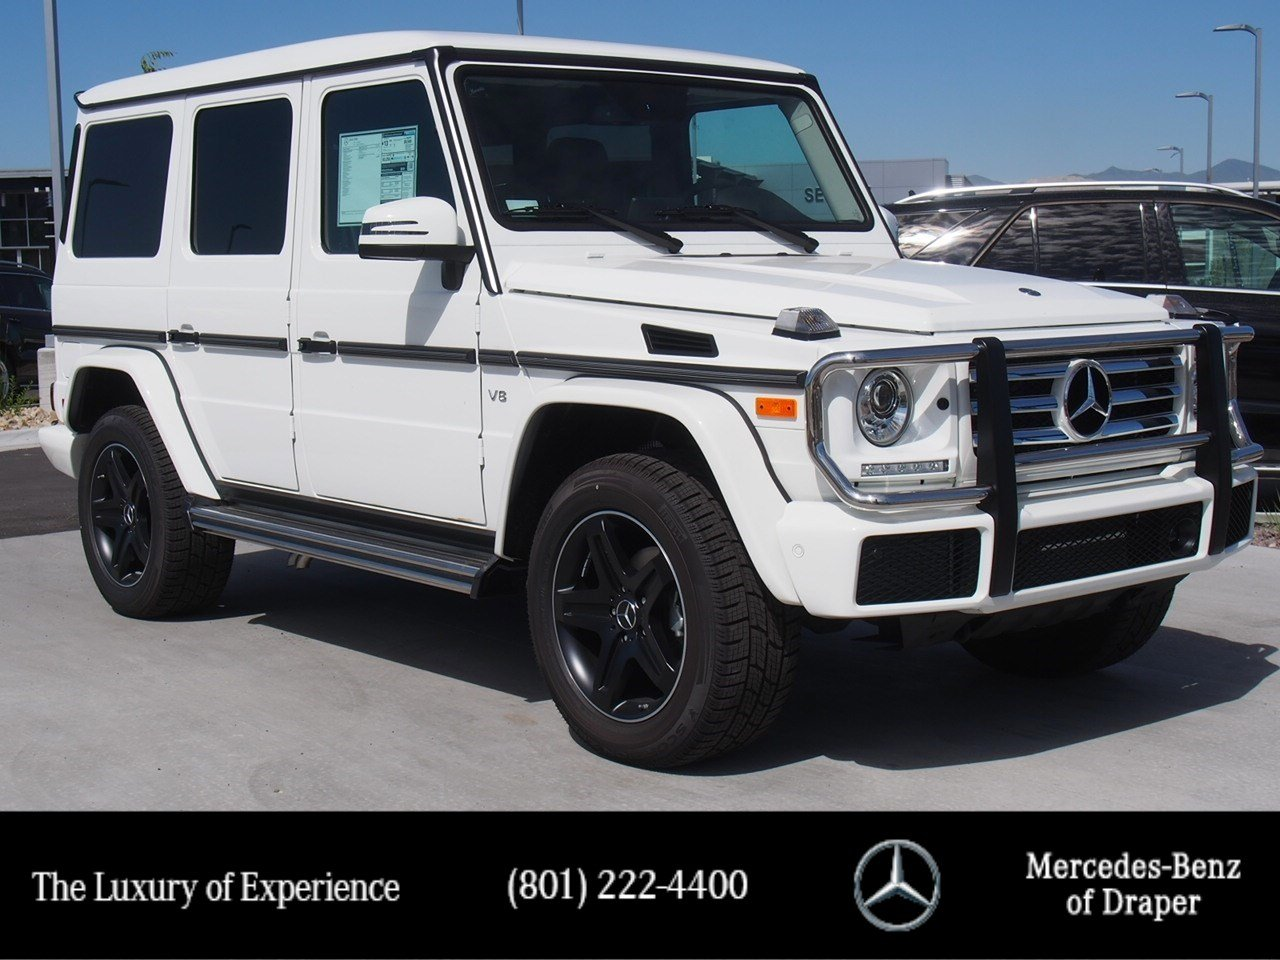 Superior New 2018 Mercedes Benz G Class G 550 4MATIC®